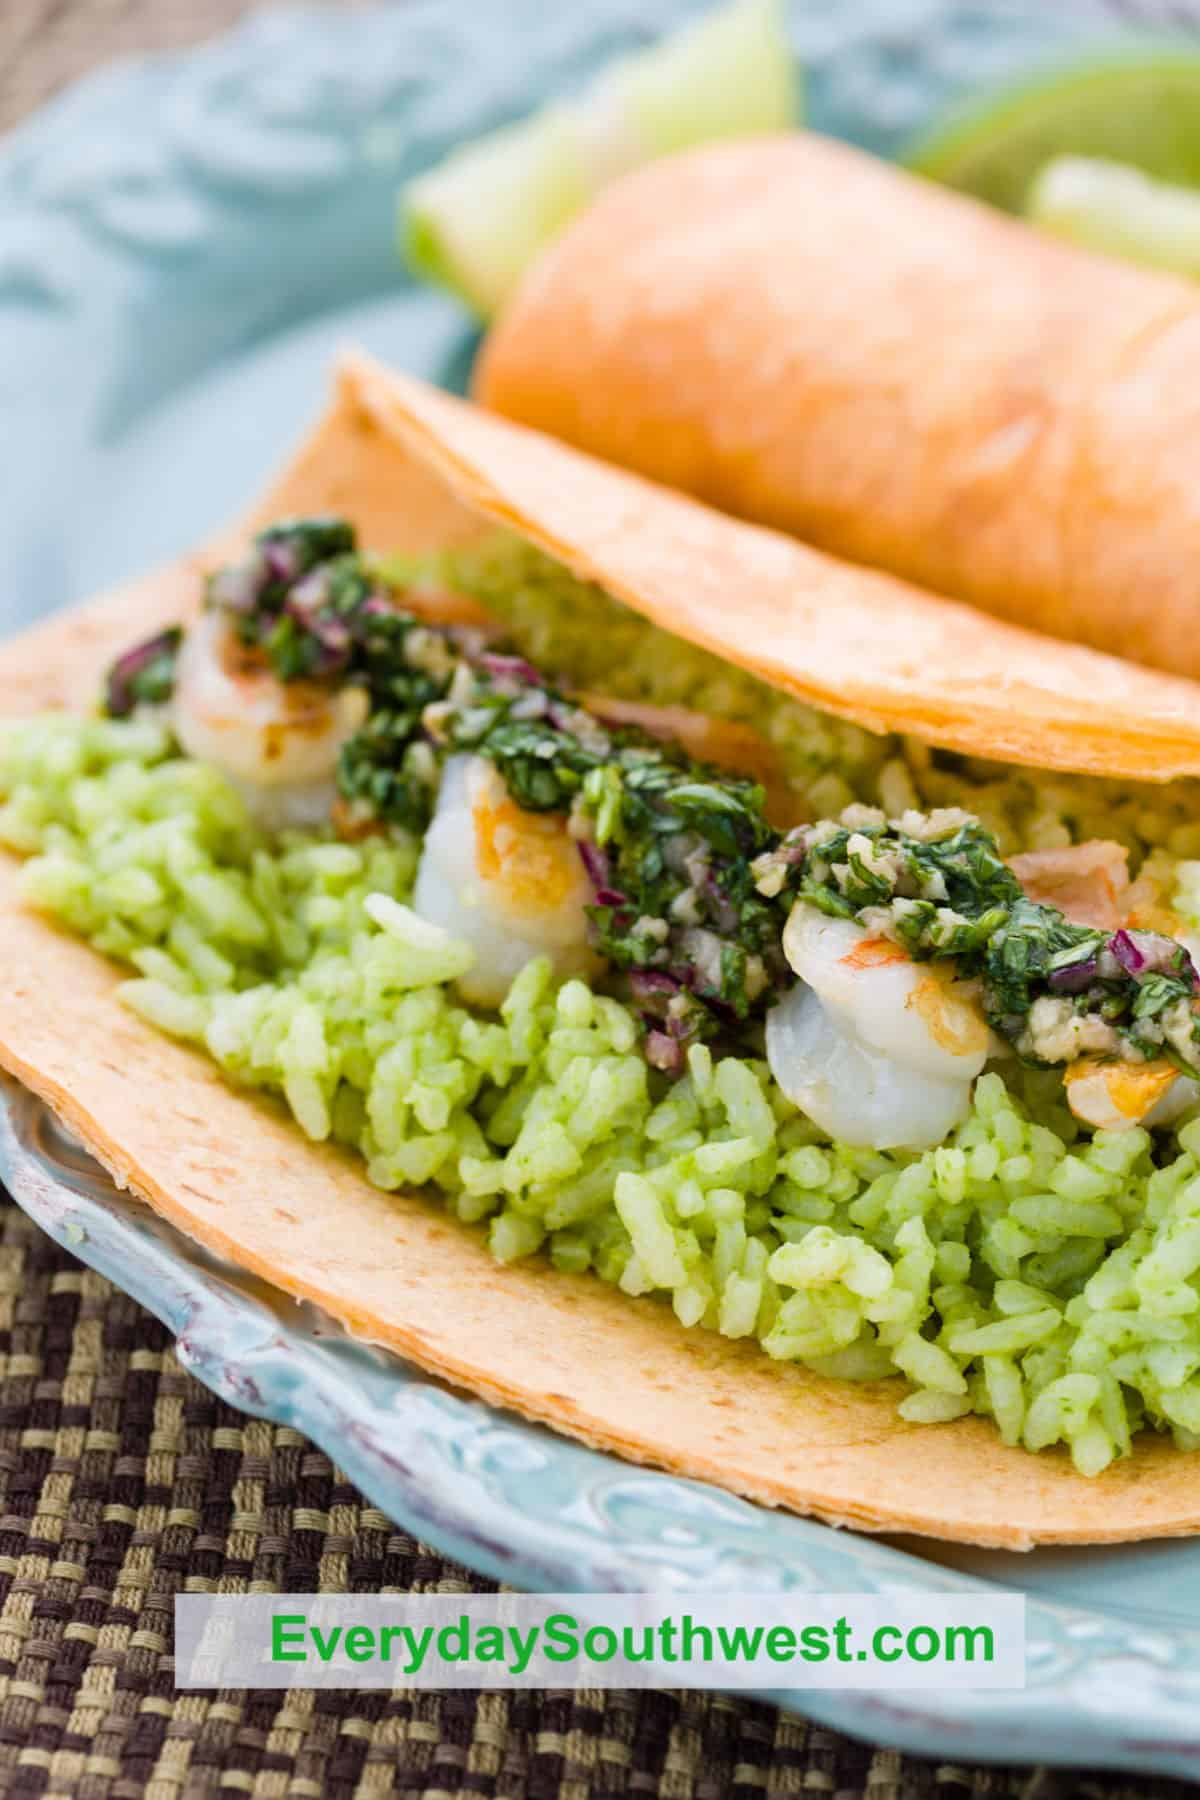 Tequila Lime Grilled Shrimp Burrito